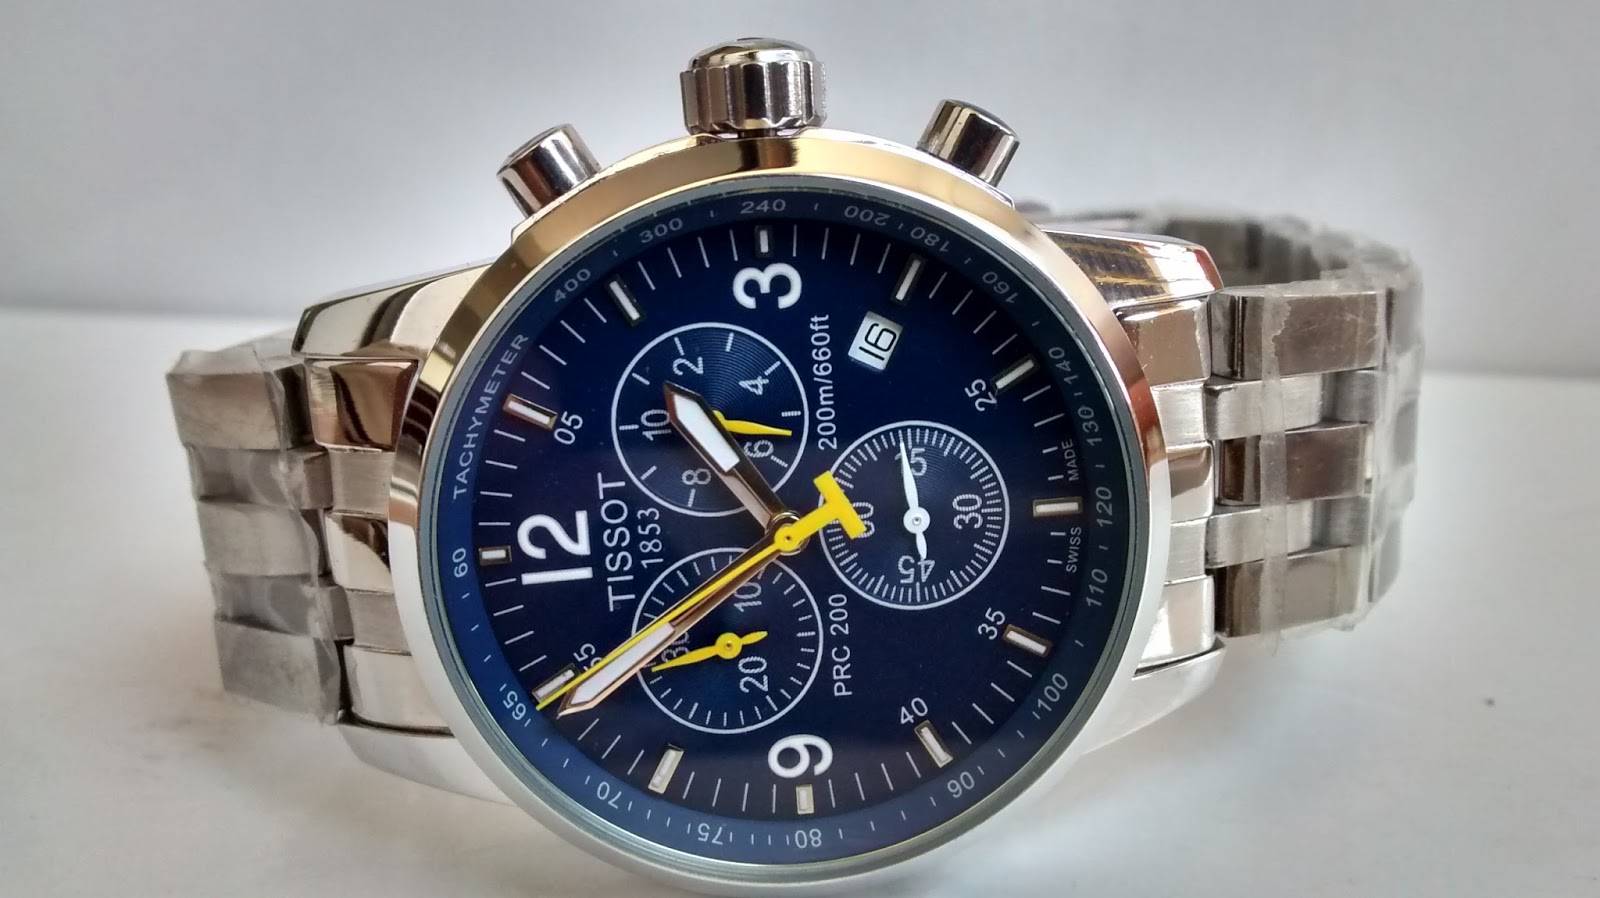 4a8a4af84ac SOLD OUT TISSOT PRC 200 Chrono Blue Dial Watch Small Dial Rs3999 1 Year  Warranty. SOLD OUT. Please Don t book this watch